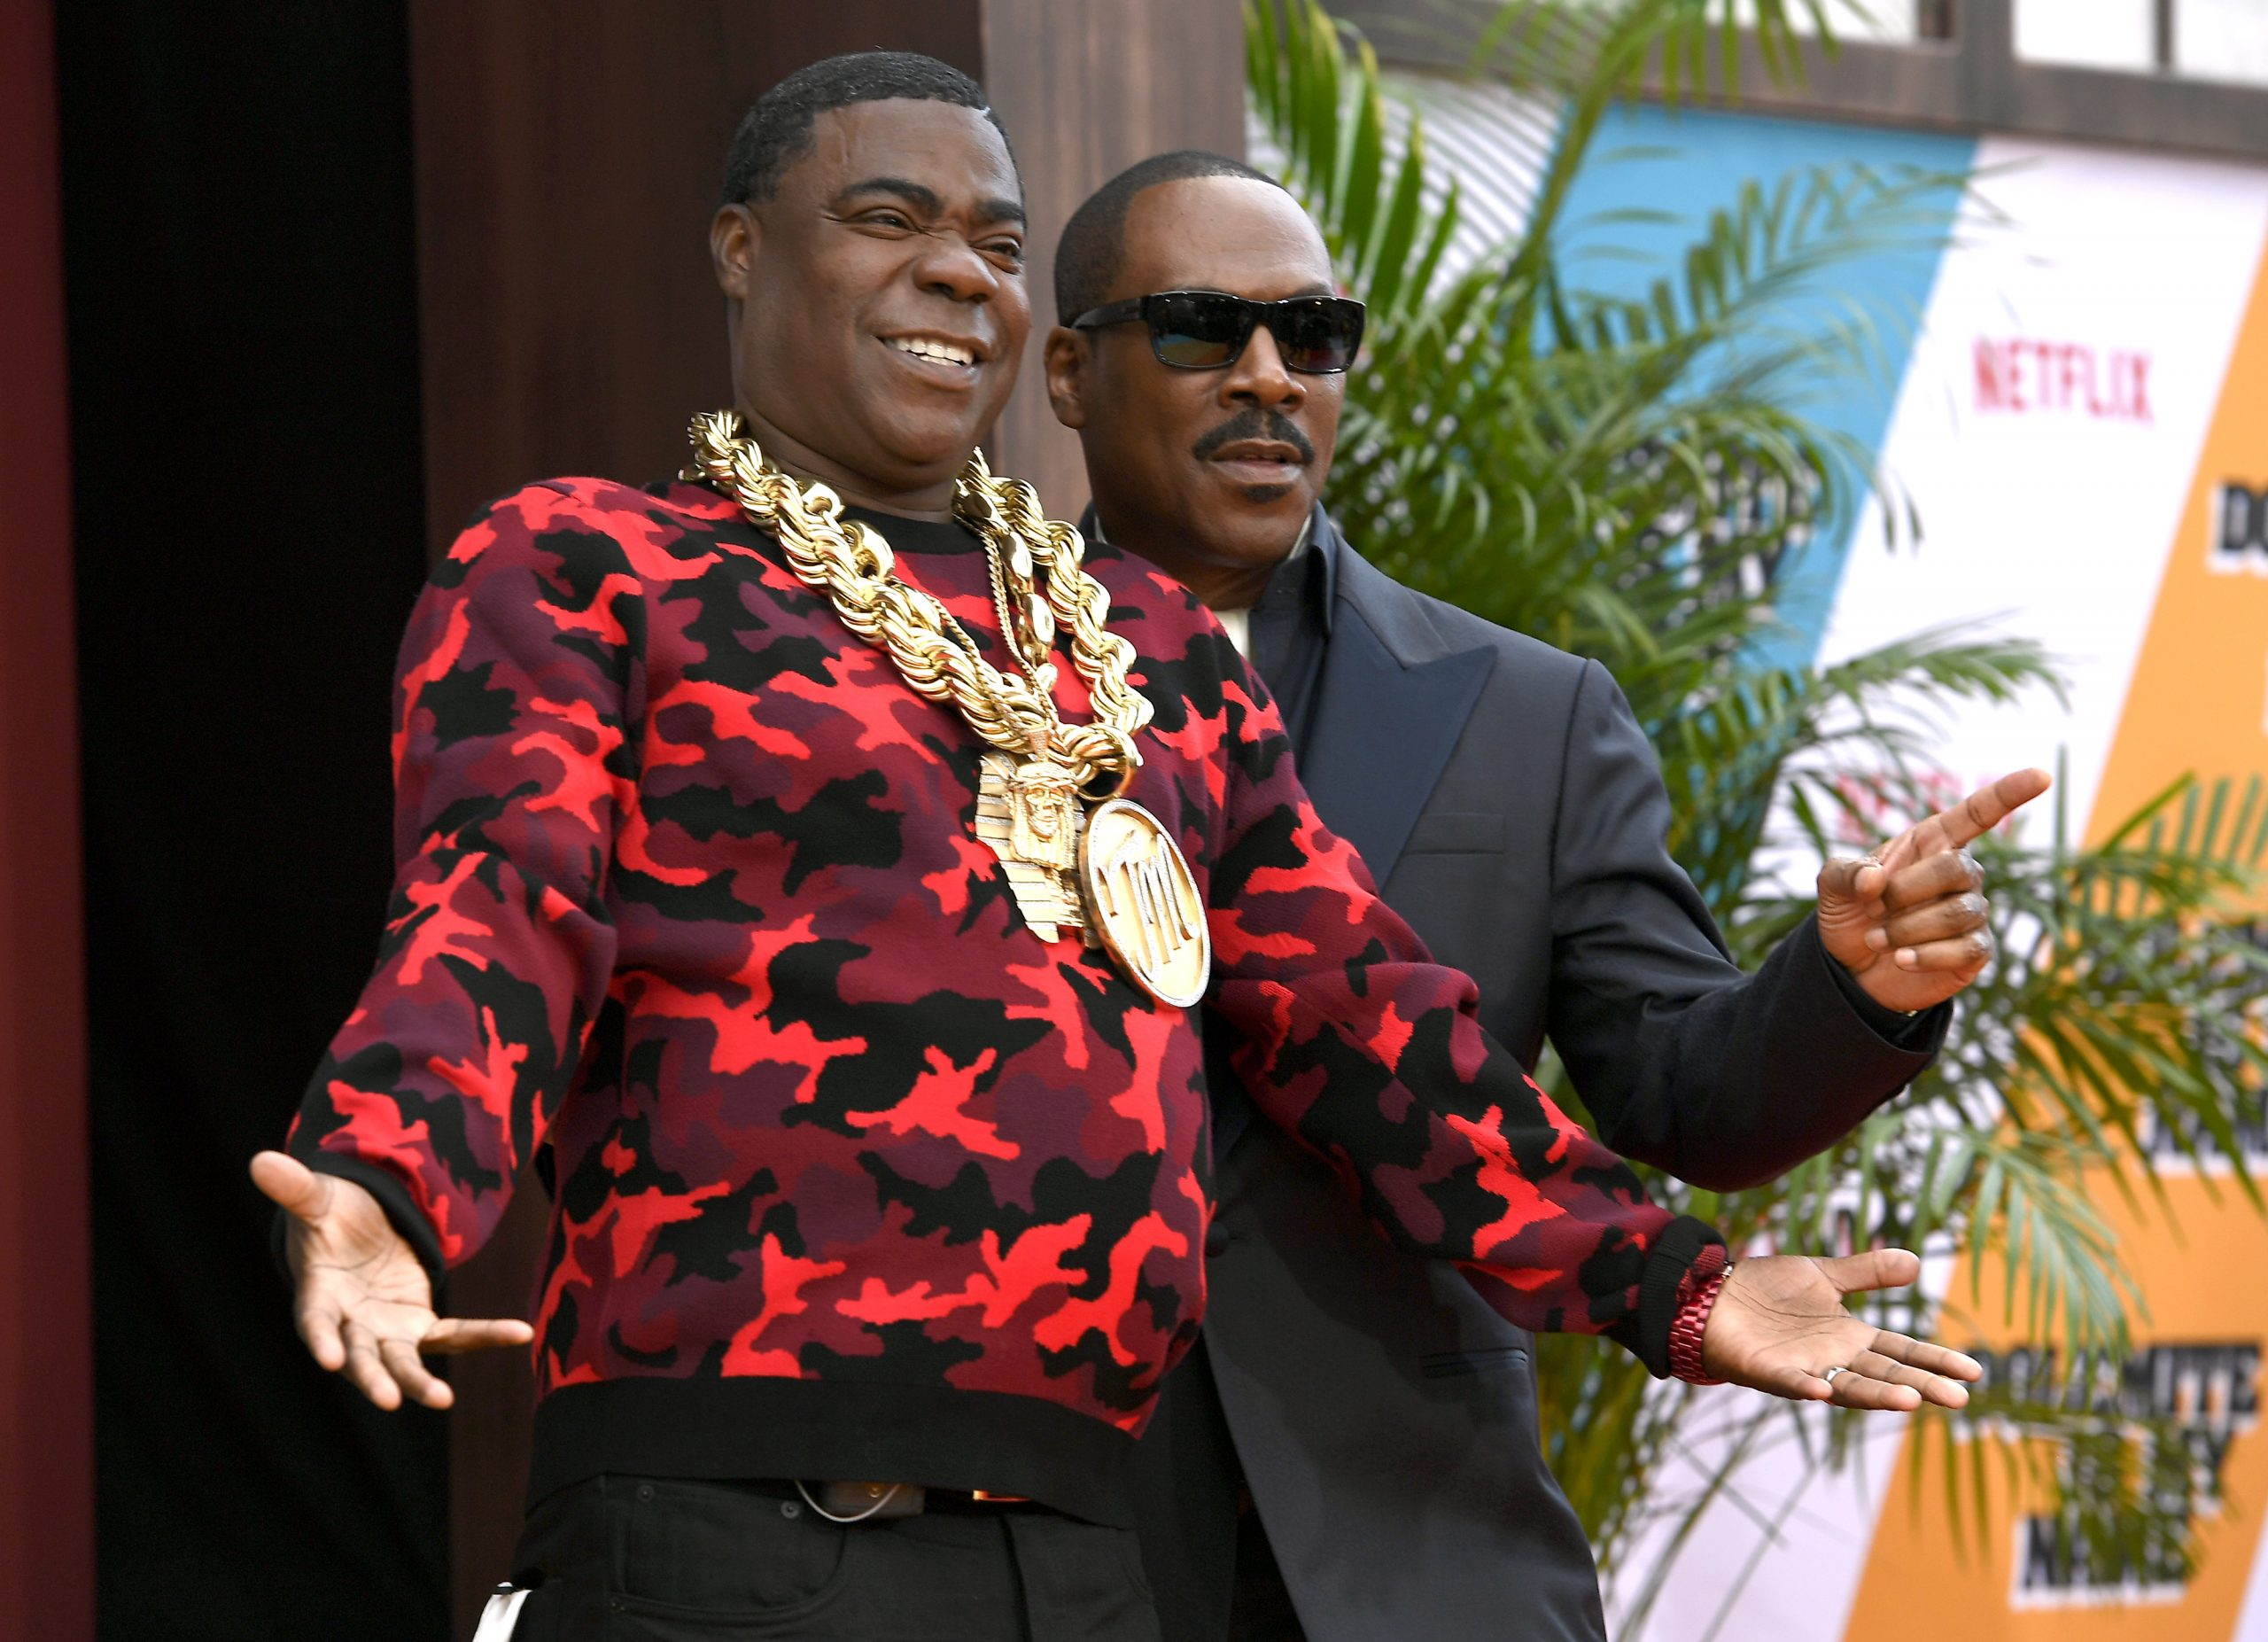 'Saturday Night Live' Alums and 'Coming 2 America' Co-Stars Tracy Morgan and Eddie Murphy